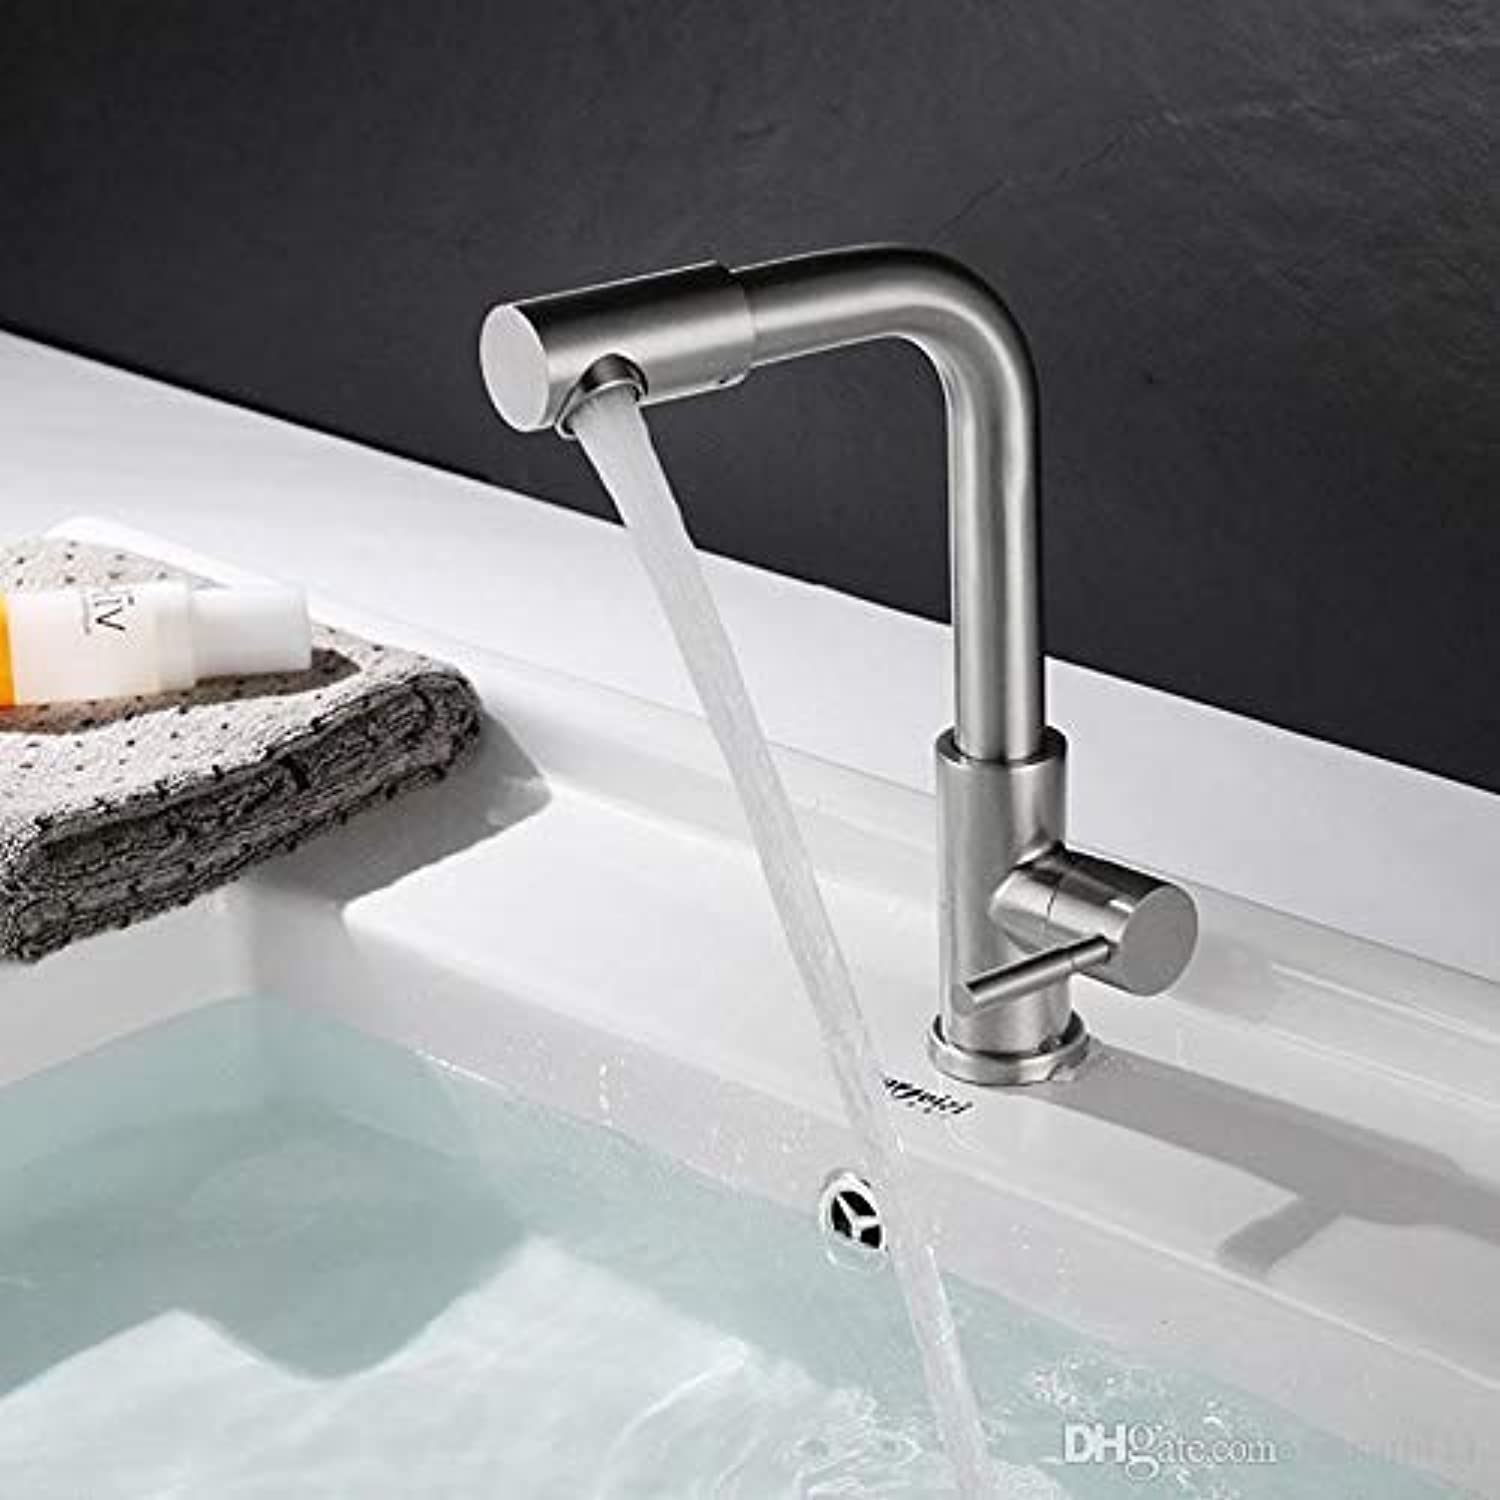 Oudan Sus304 Stainless Steel Basin Faucet Single Cold Sink Faucets Turning Faucet Brushed Finish Single Handle Faucets, B (color   C, Size   -)